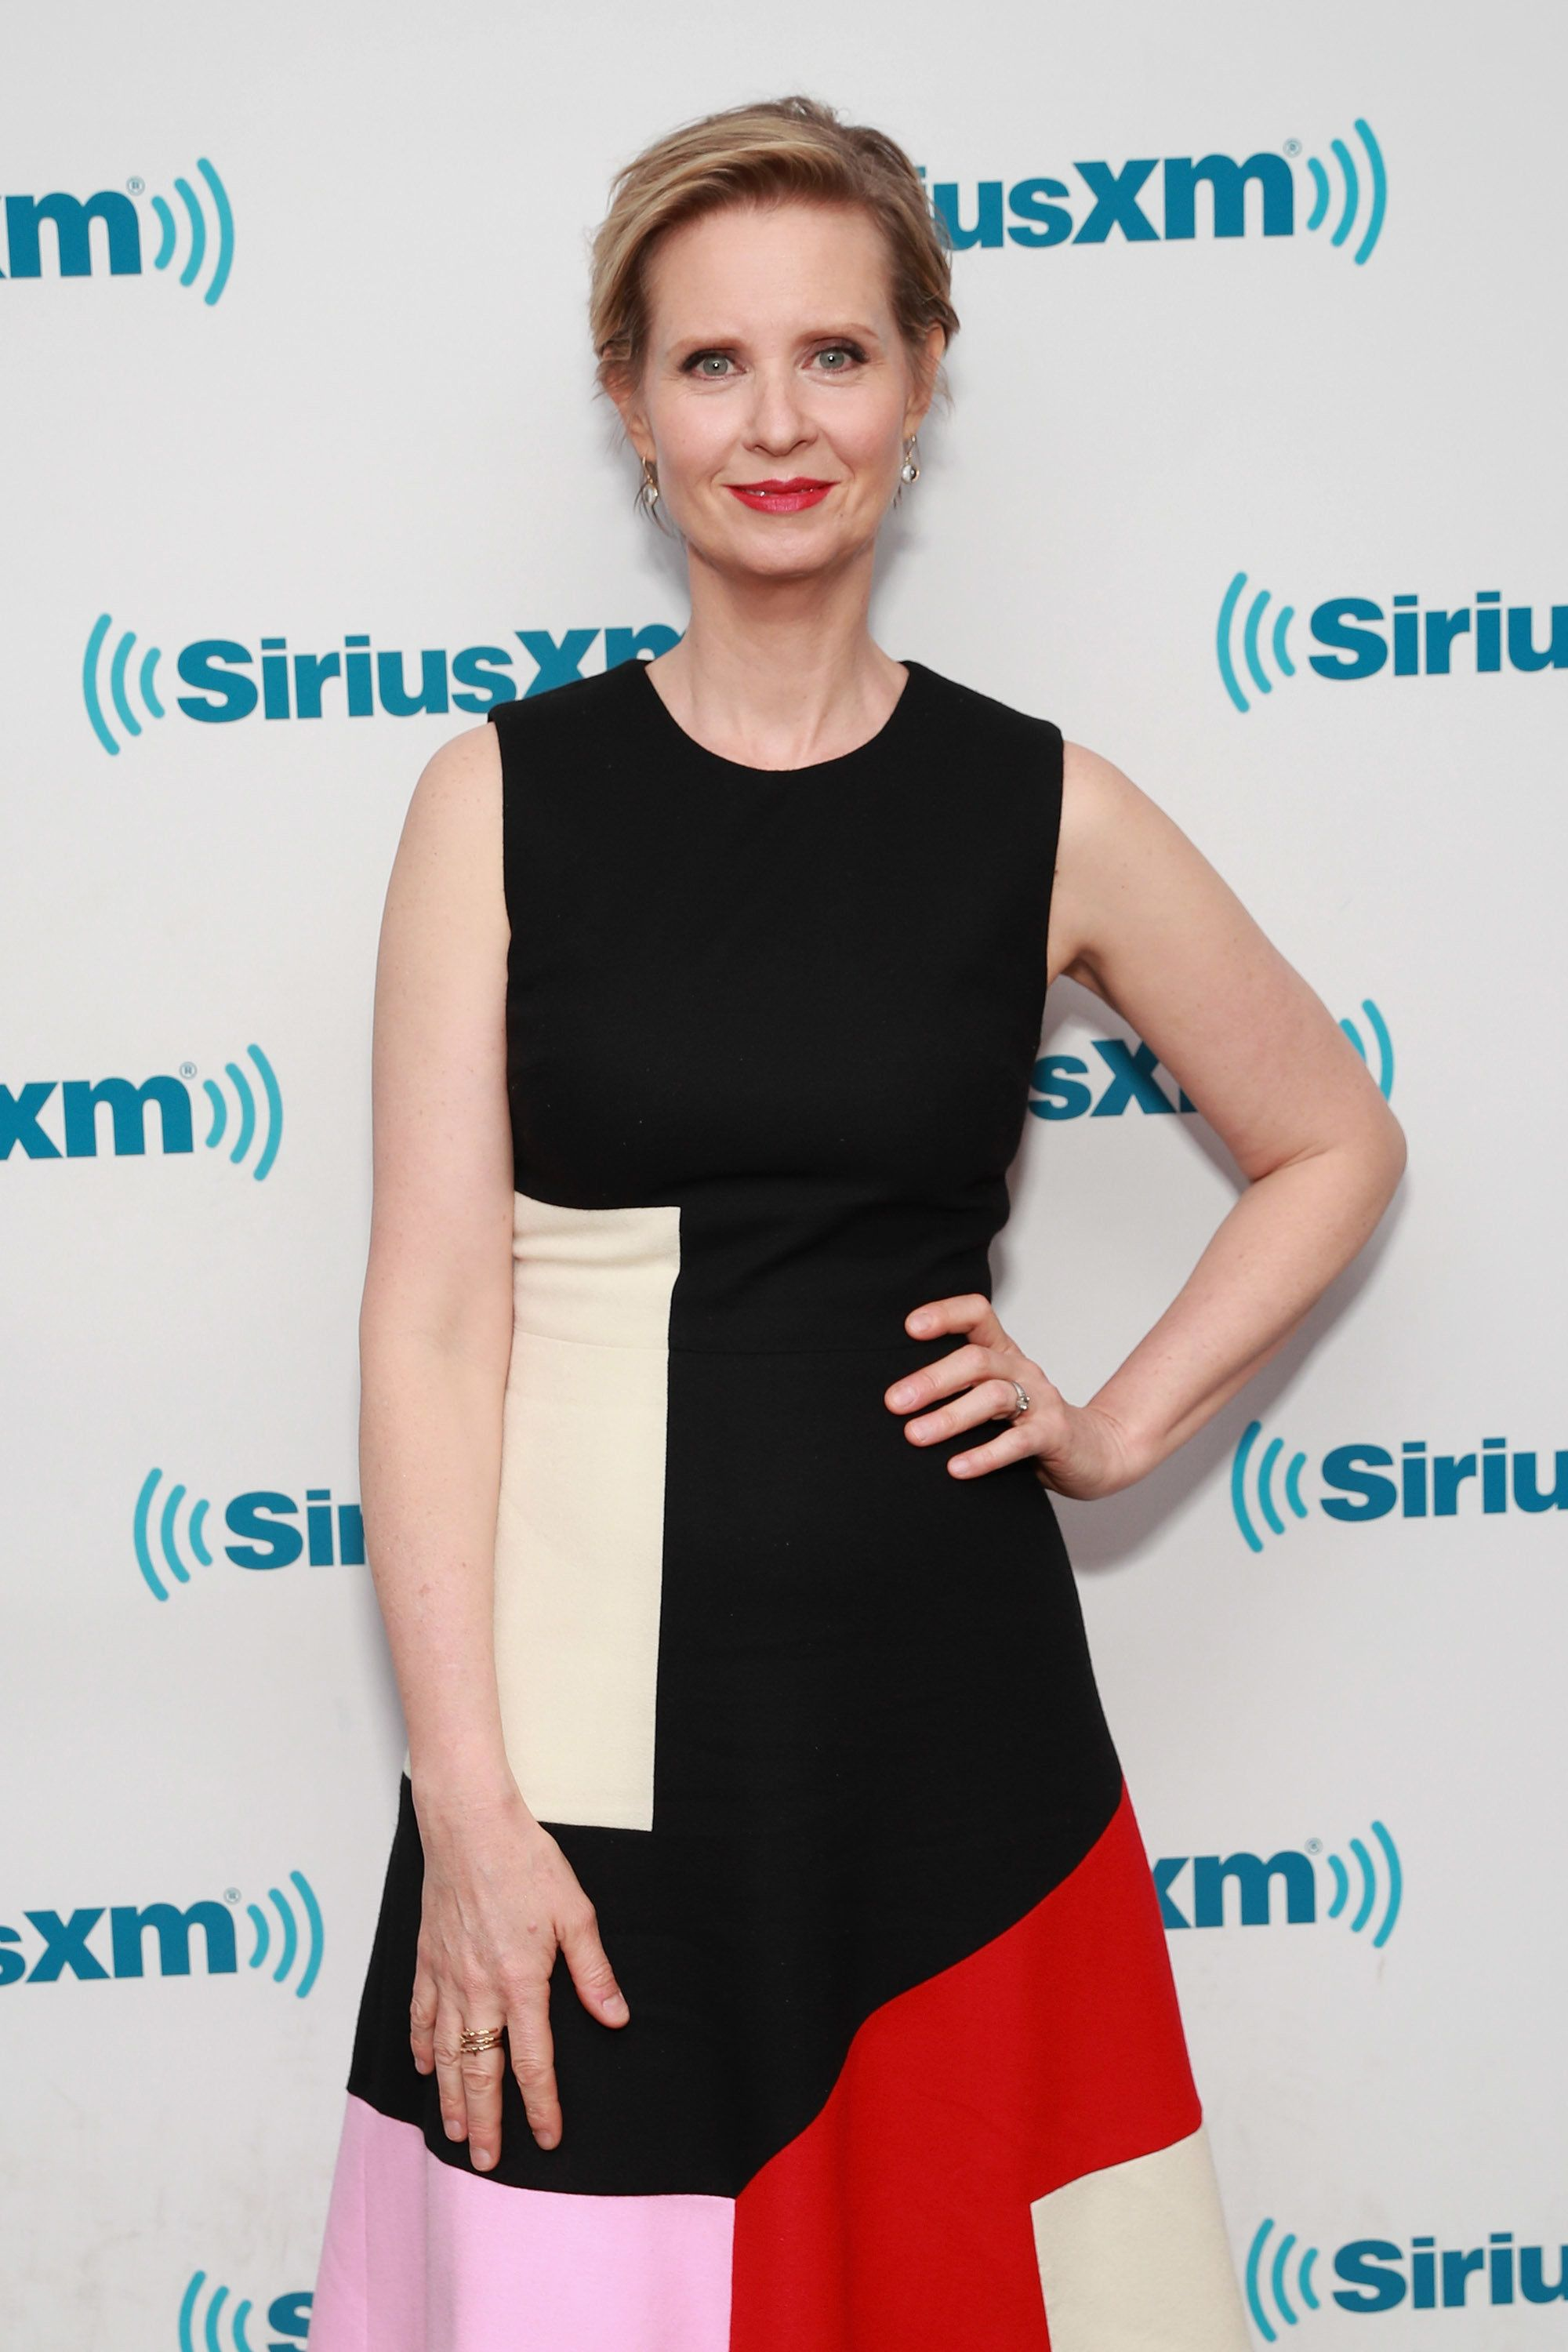 NEW YORK, NY - APRIL 21:  Actress Cynthia Nixon visits the SiriusXM Studios on April 21, 2017 in New York City.  (Photo by Cindy Ord/Getty Images)